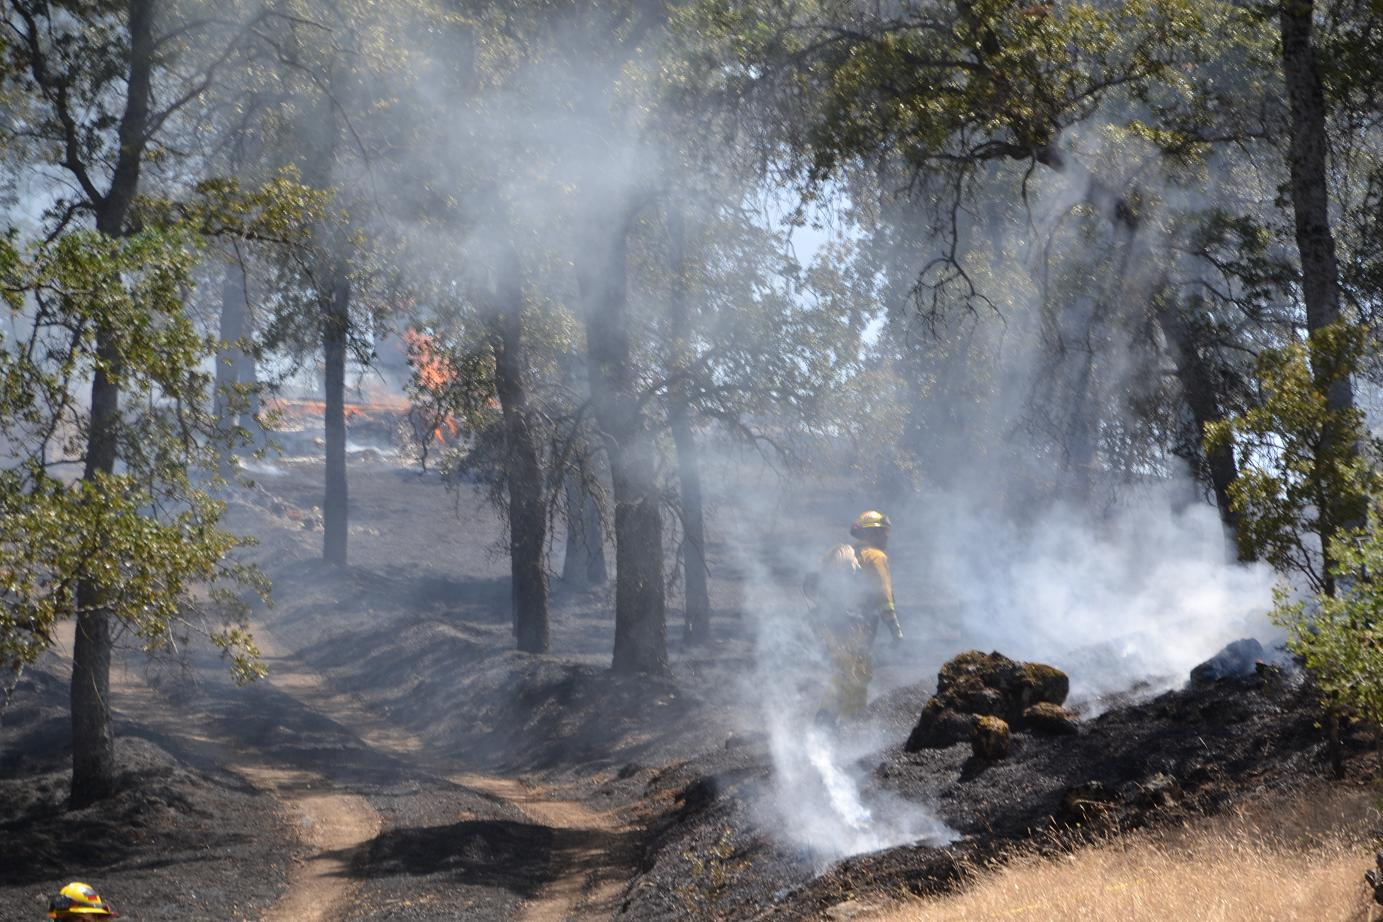 Firefighter in the smoke on Lakes Fire - photo by Gina Clugston